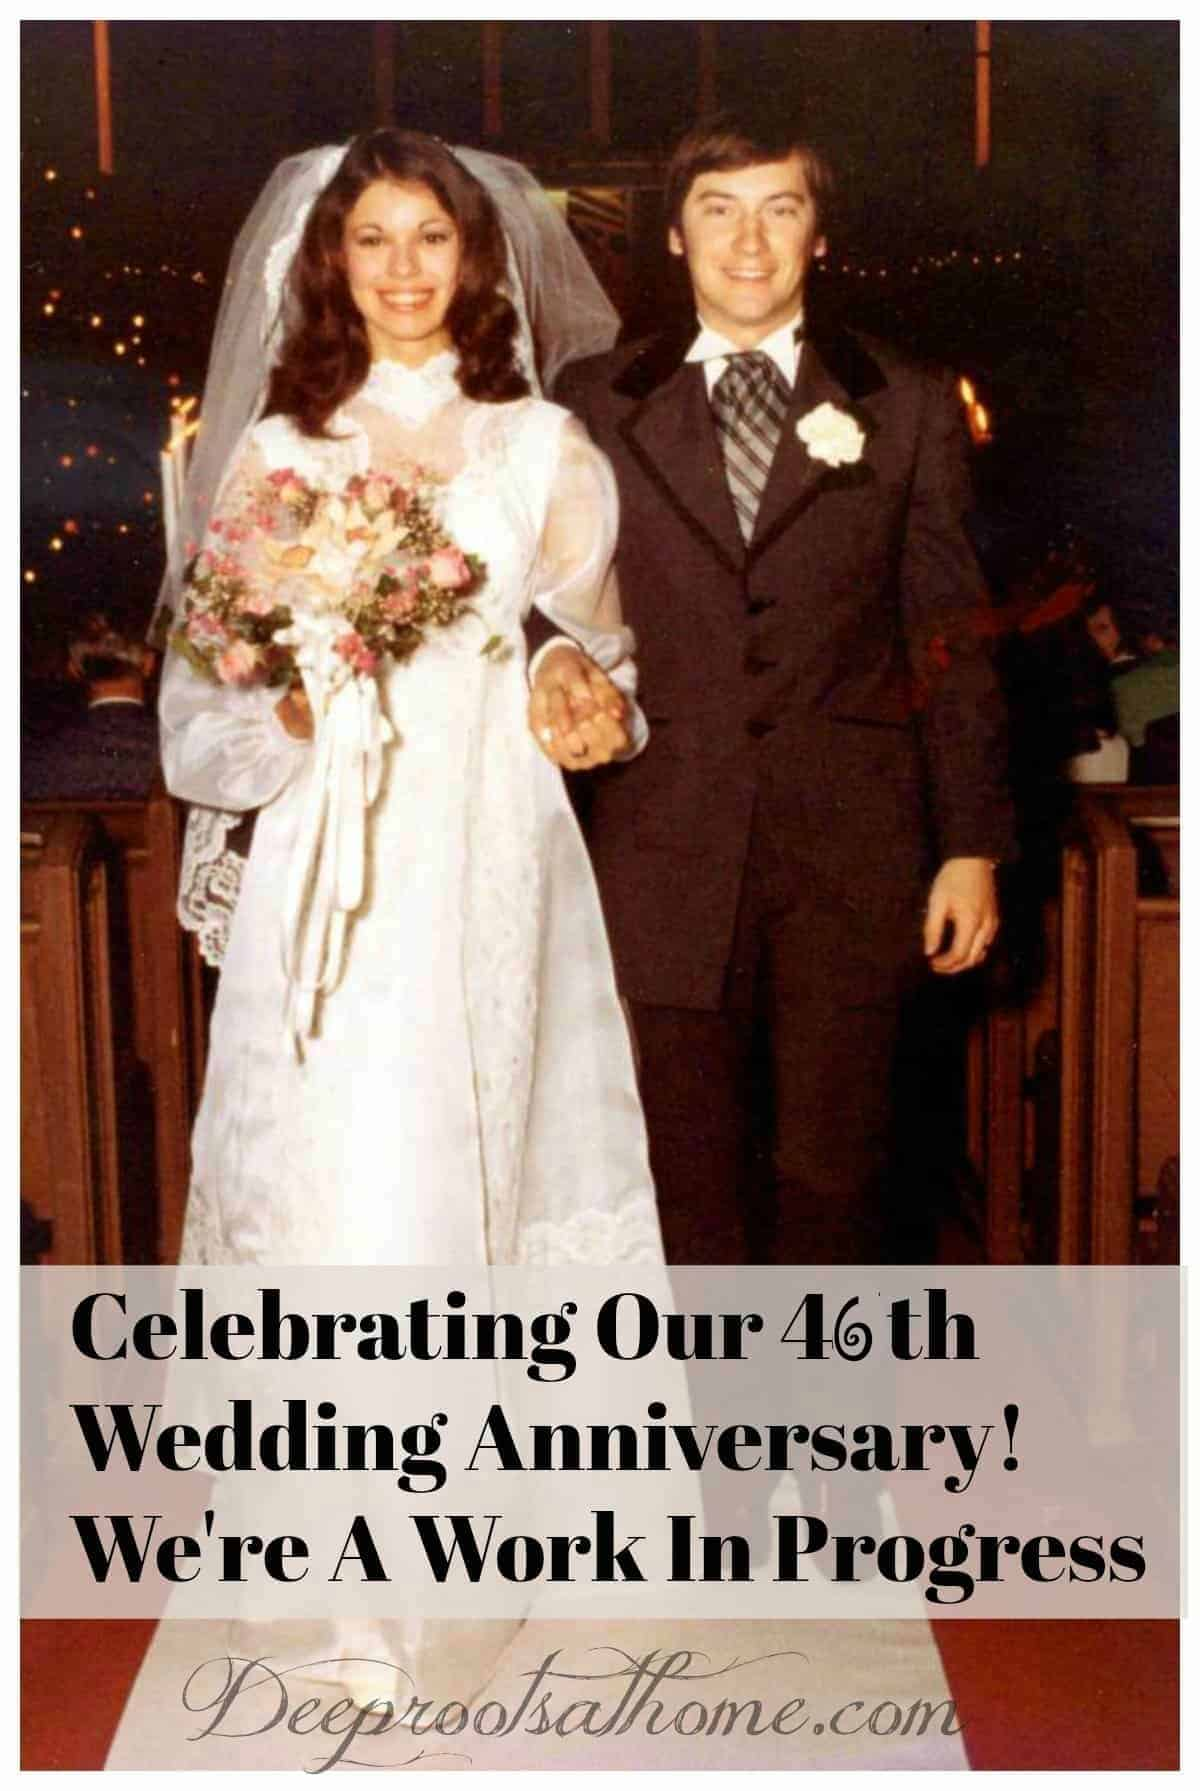 Celebrating Our 46th Wedding Anniversary! We Are A Work In Progress. Our wedding day